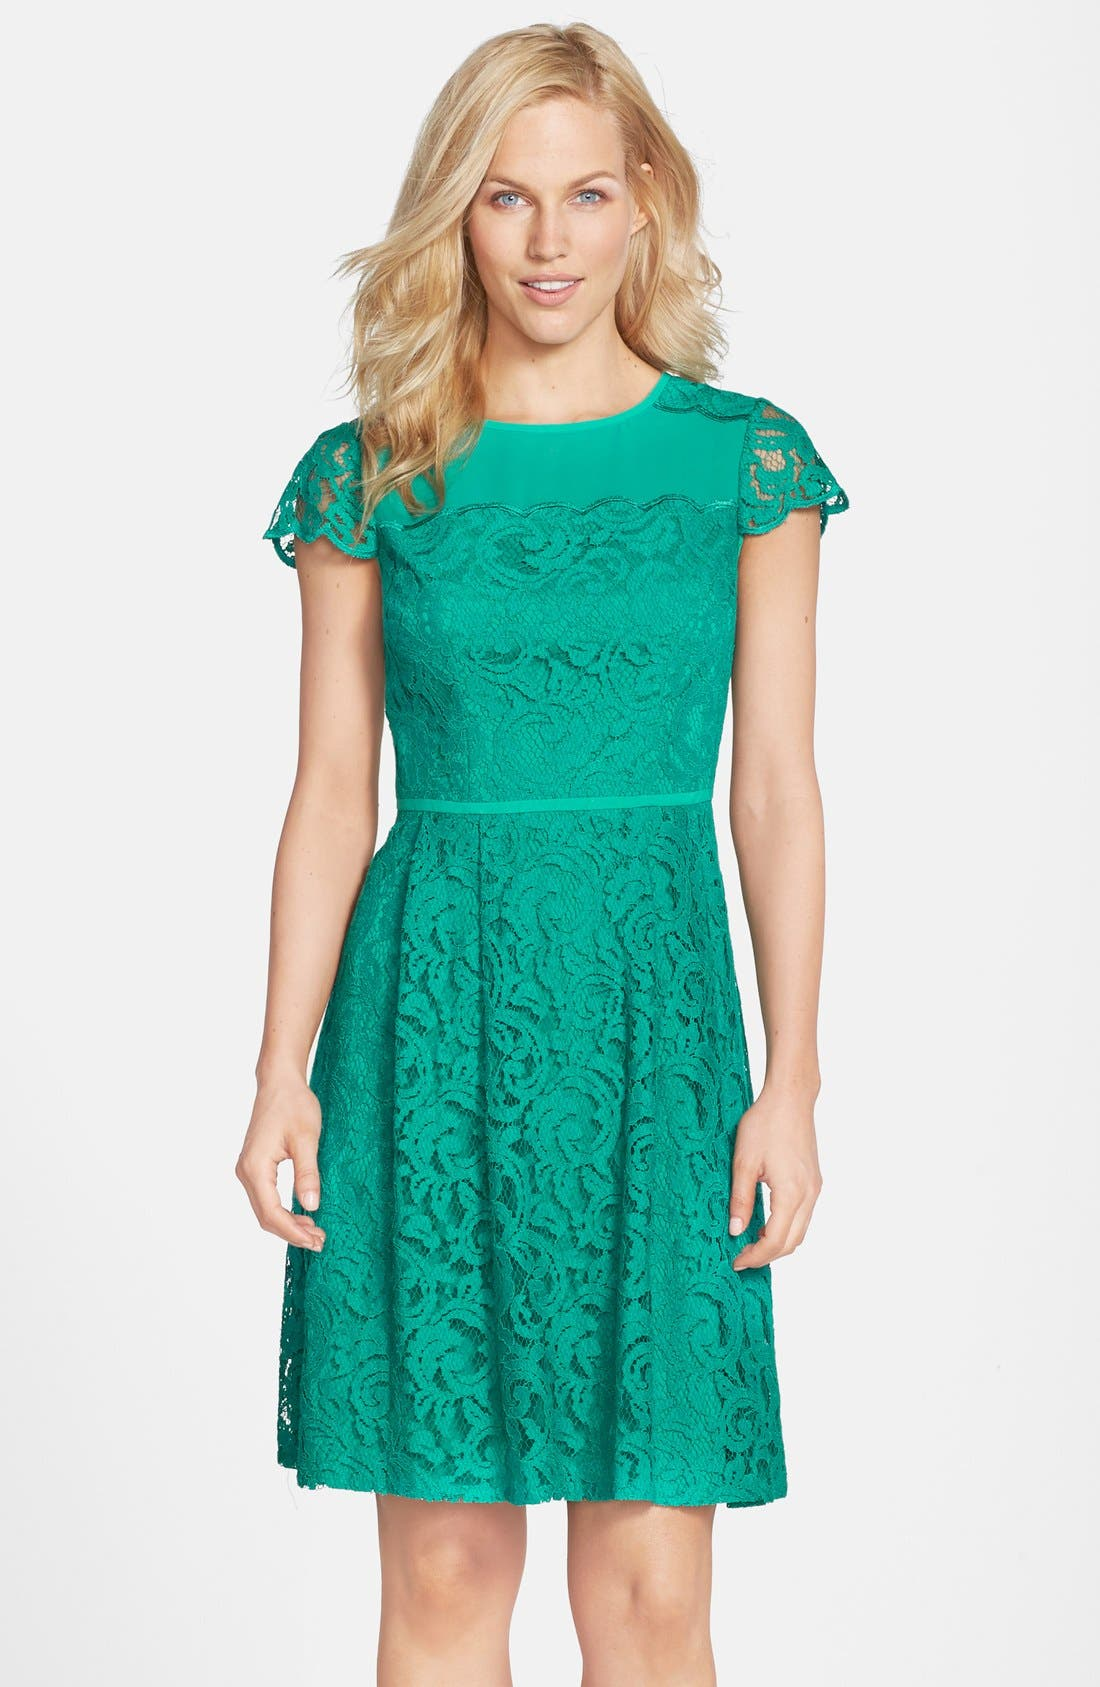 Alternate Image 1 Selected - Adrianna Papell Cap Sleeve Lace Fit & Flare Dress